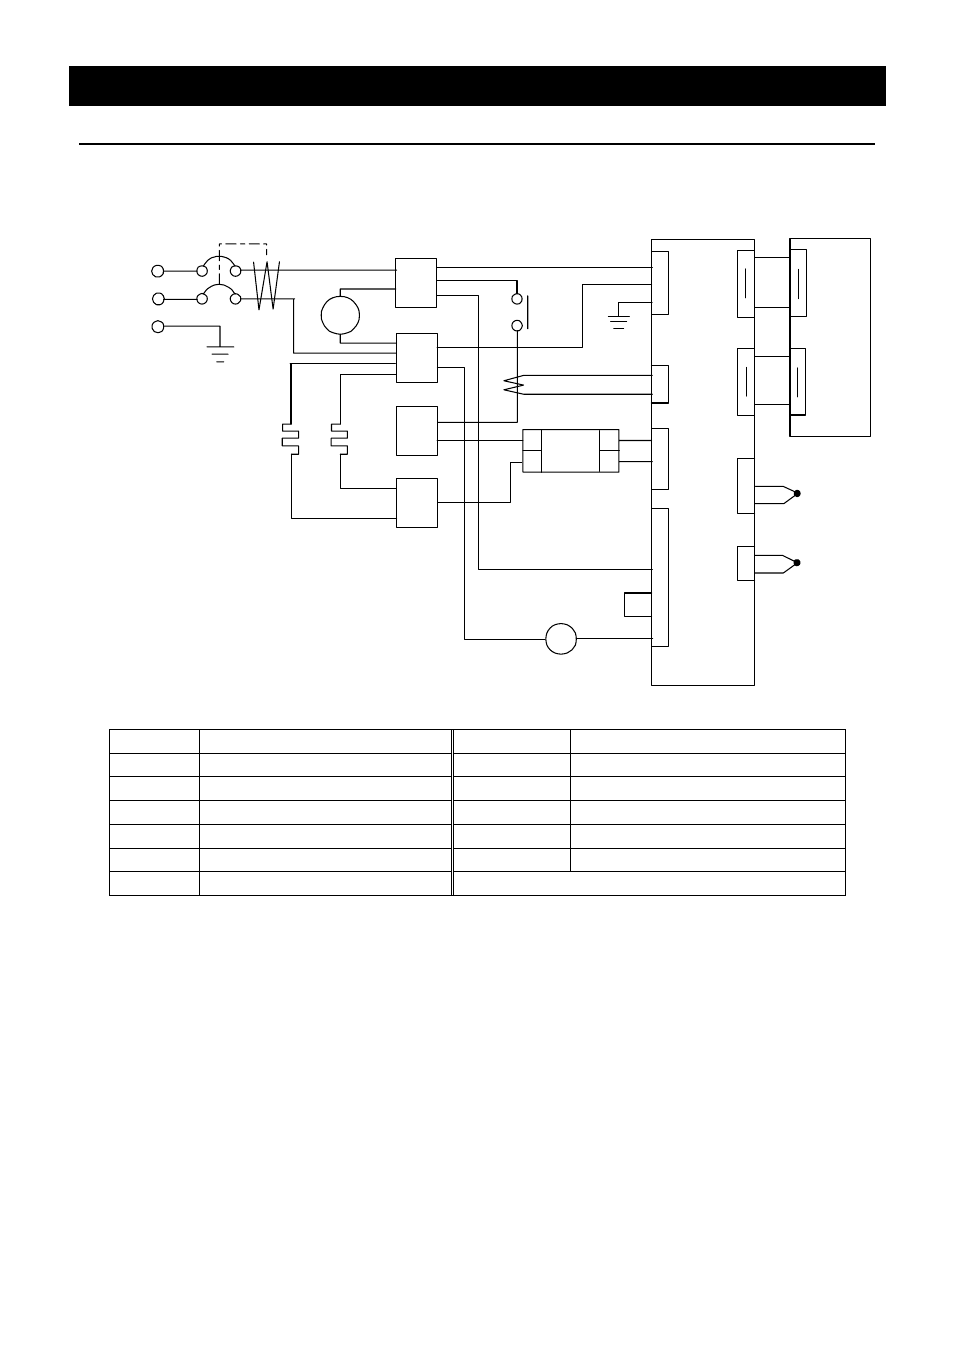 medium resolution of wiring diagram yamato scientific dkn 912 constant temperature drying oven user manual page 46 50